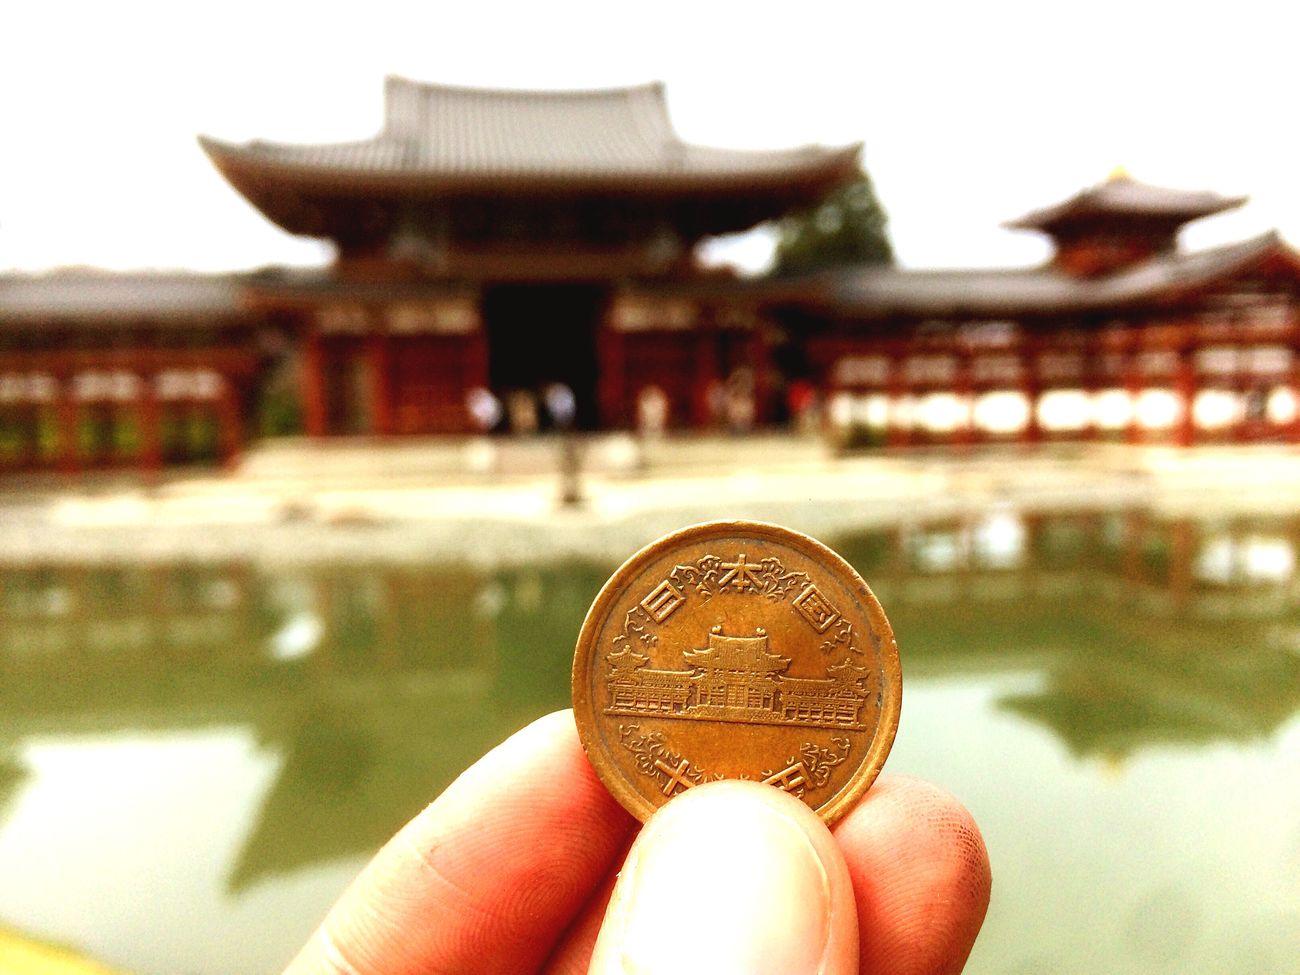 Byodo-In Temple Japanese Coin 10yen Coin